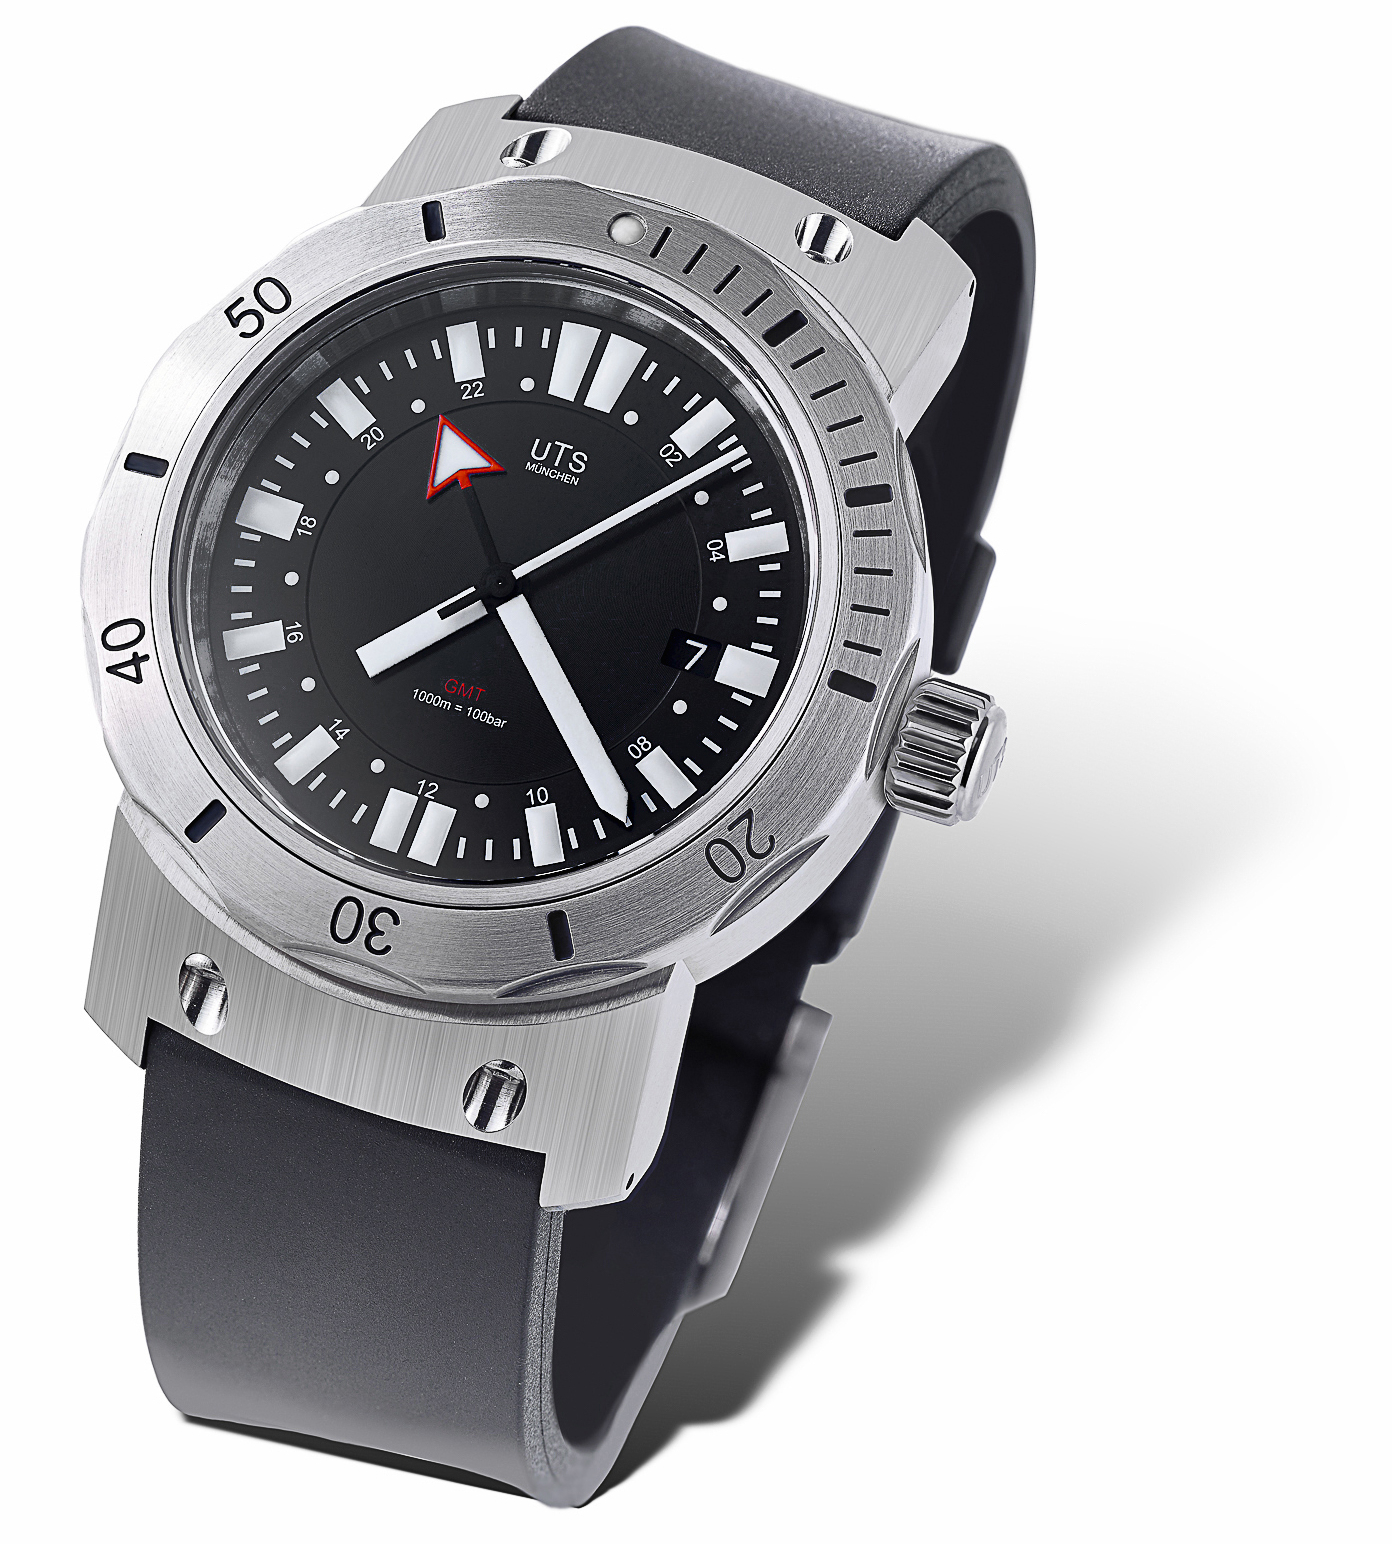 GMT Dive Watch | UTS 1000M GMT